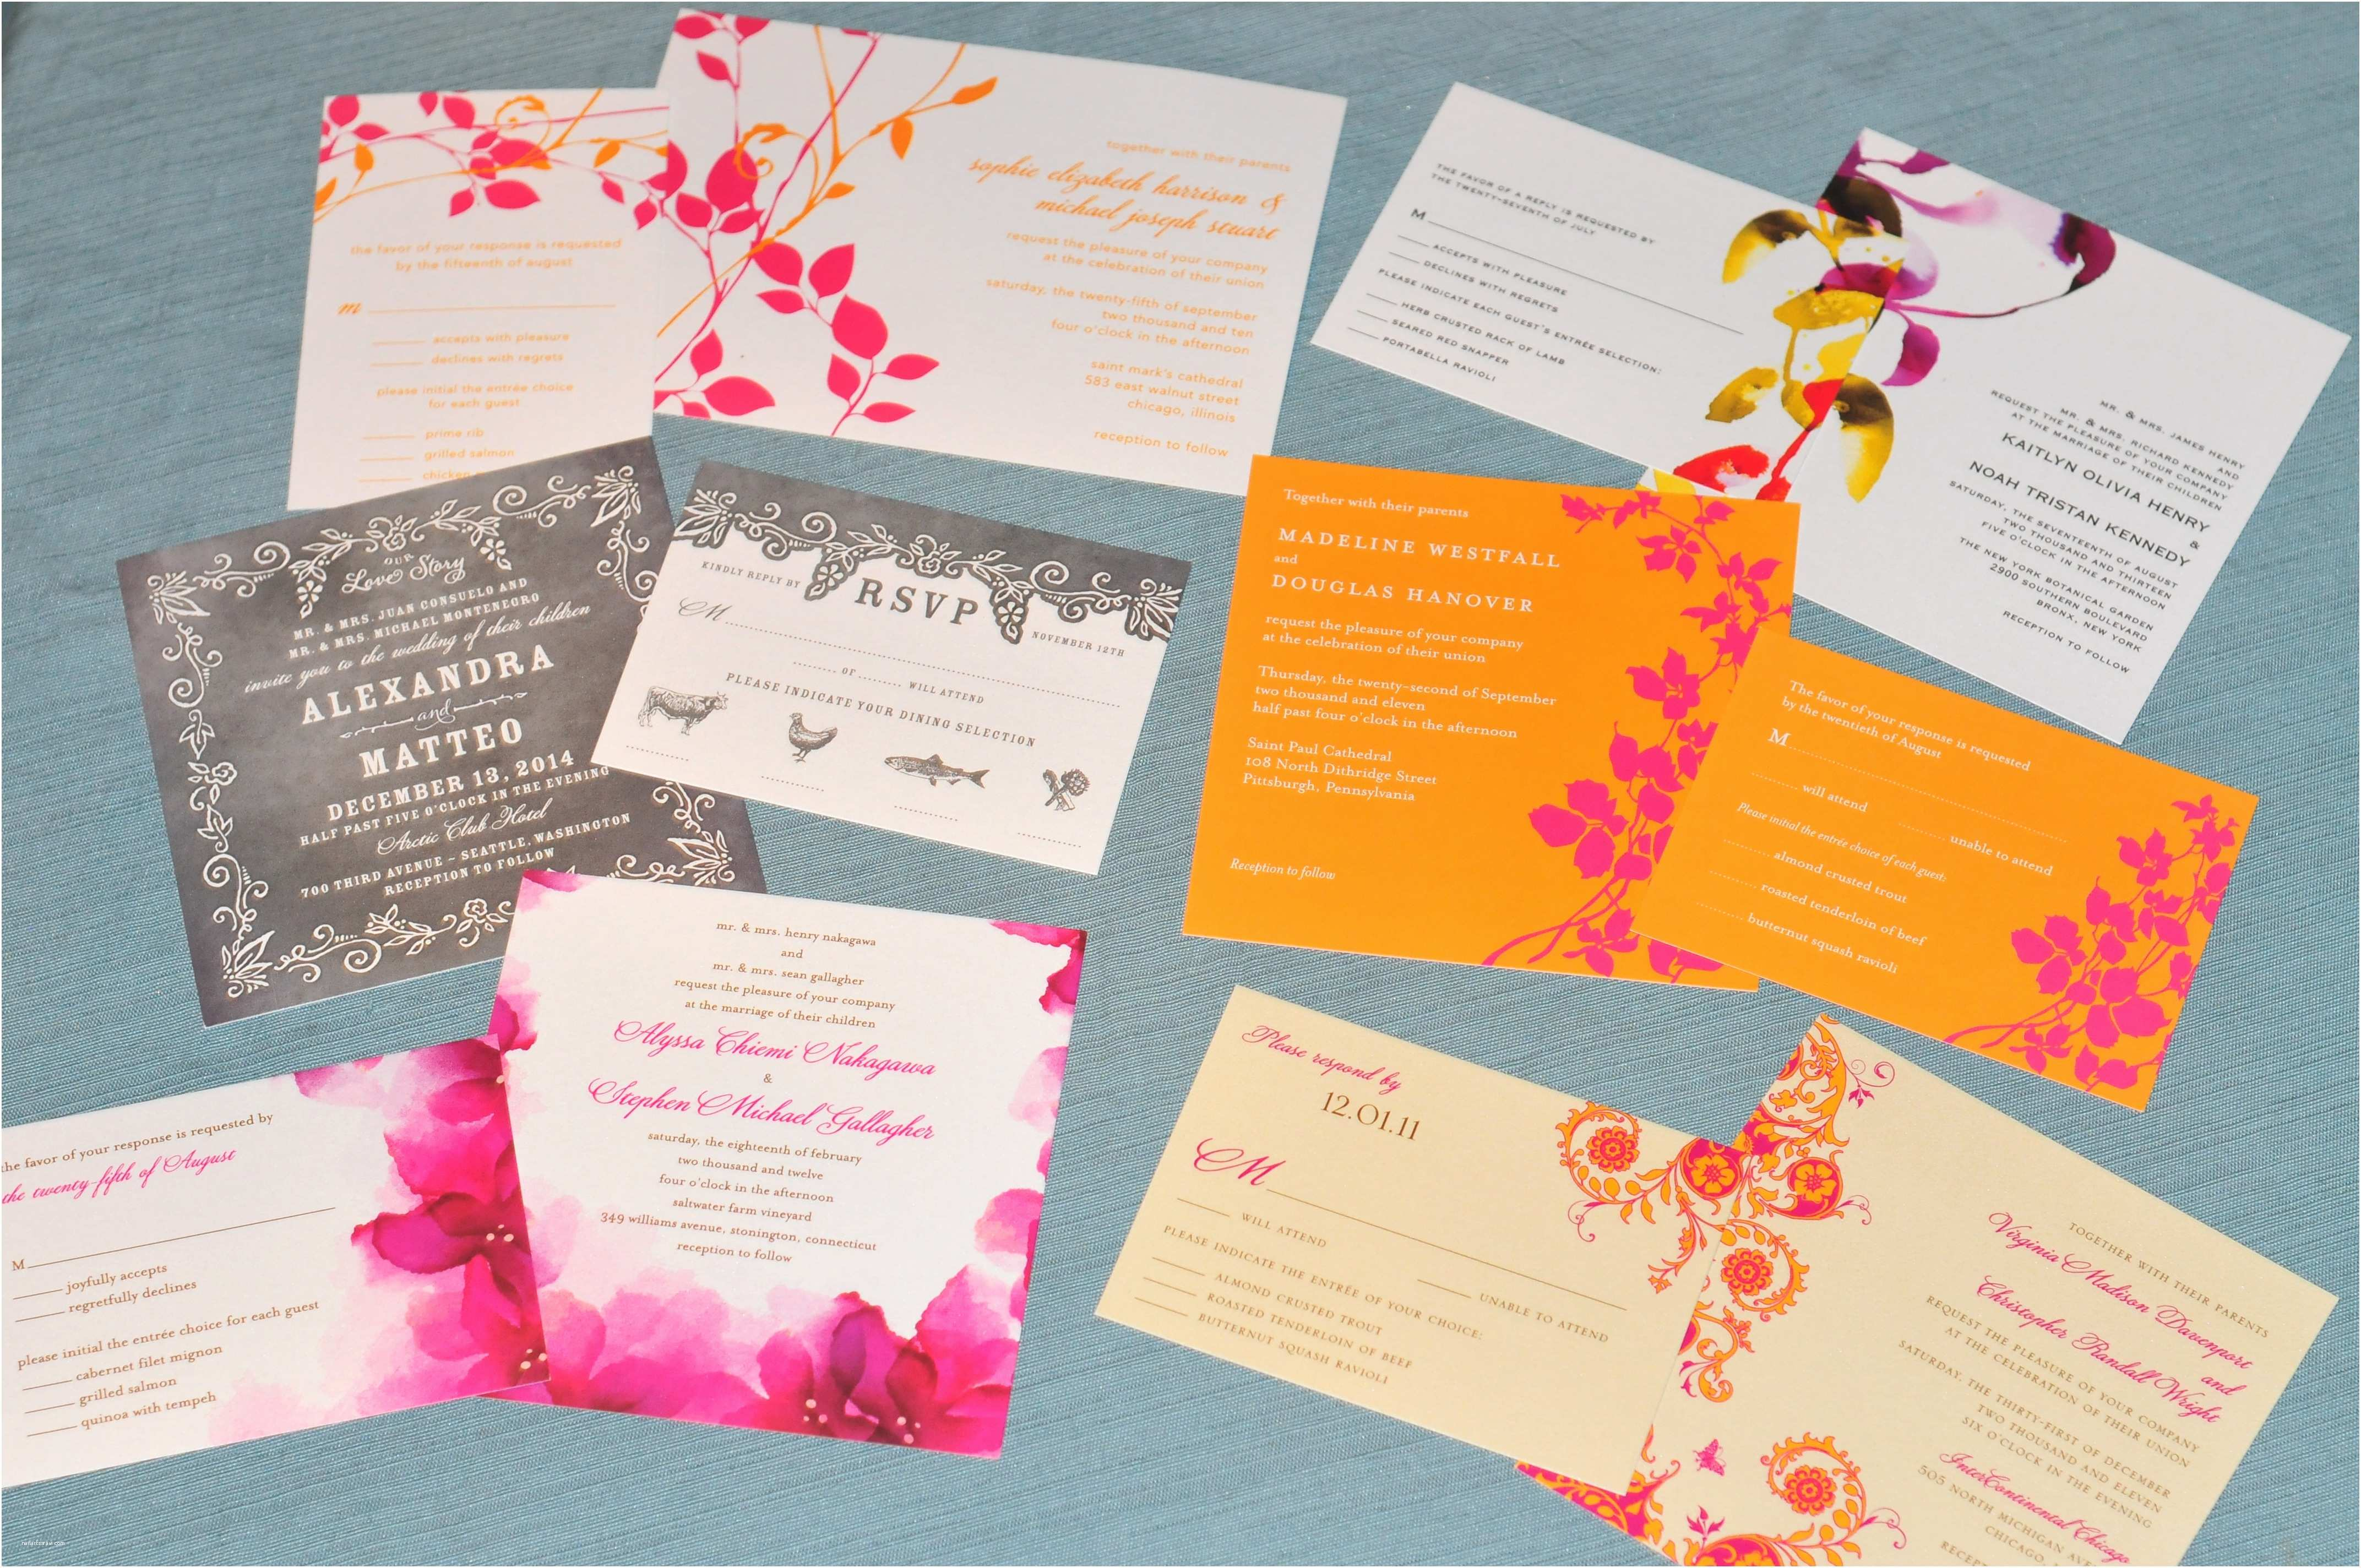 Wedding Divas Wedding Invitations the Wedding Paper Divas Samples are Here